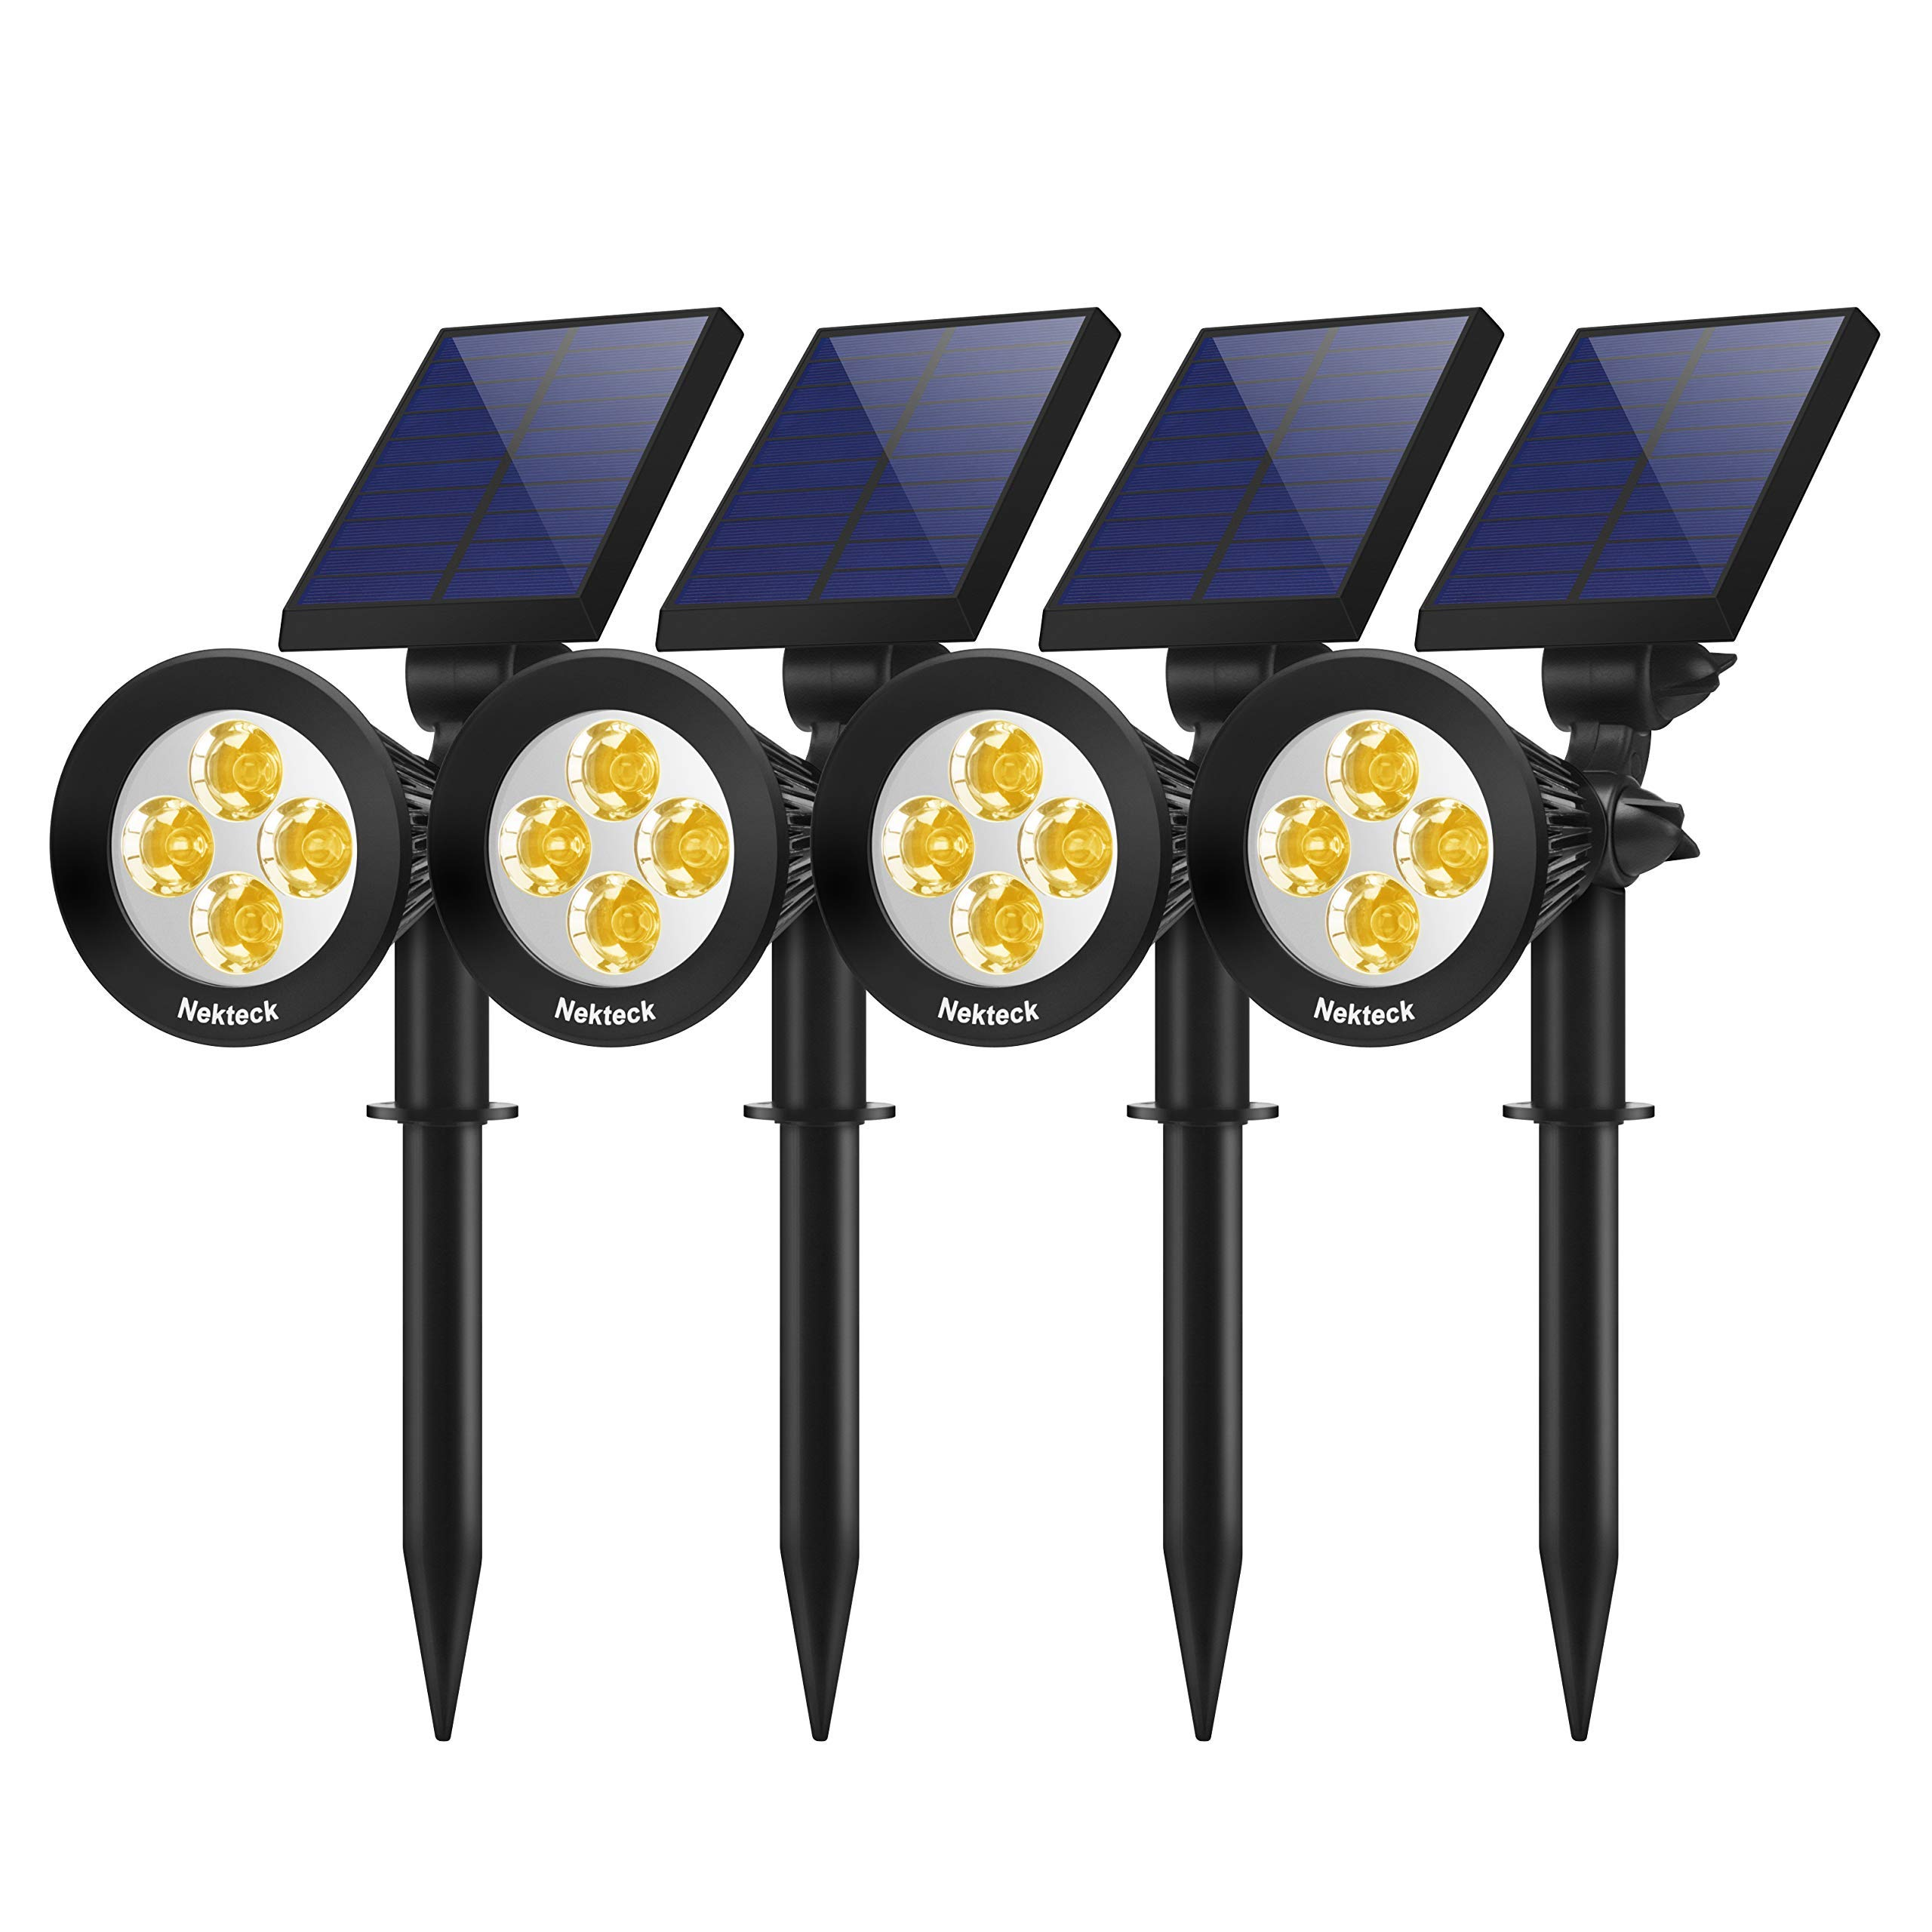 Nekteck Outdoor 2-in-1 Solar Spotlights Powered 4 LED Adjustable Wall Landscape Lighting, Bright and Dark Sensing Auto On/Off for Yard, Pathway, Walkway, Garden, Driveway, 4 Pack, Warm White by Nekteck